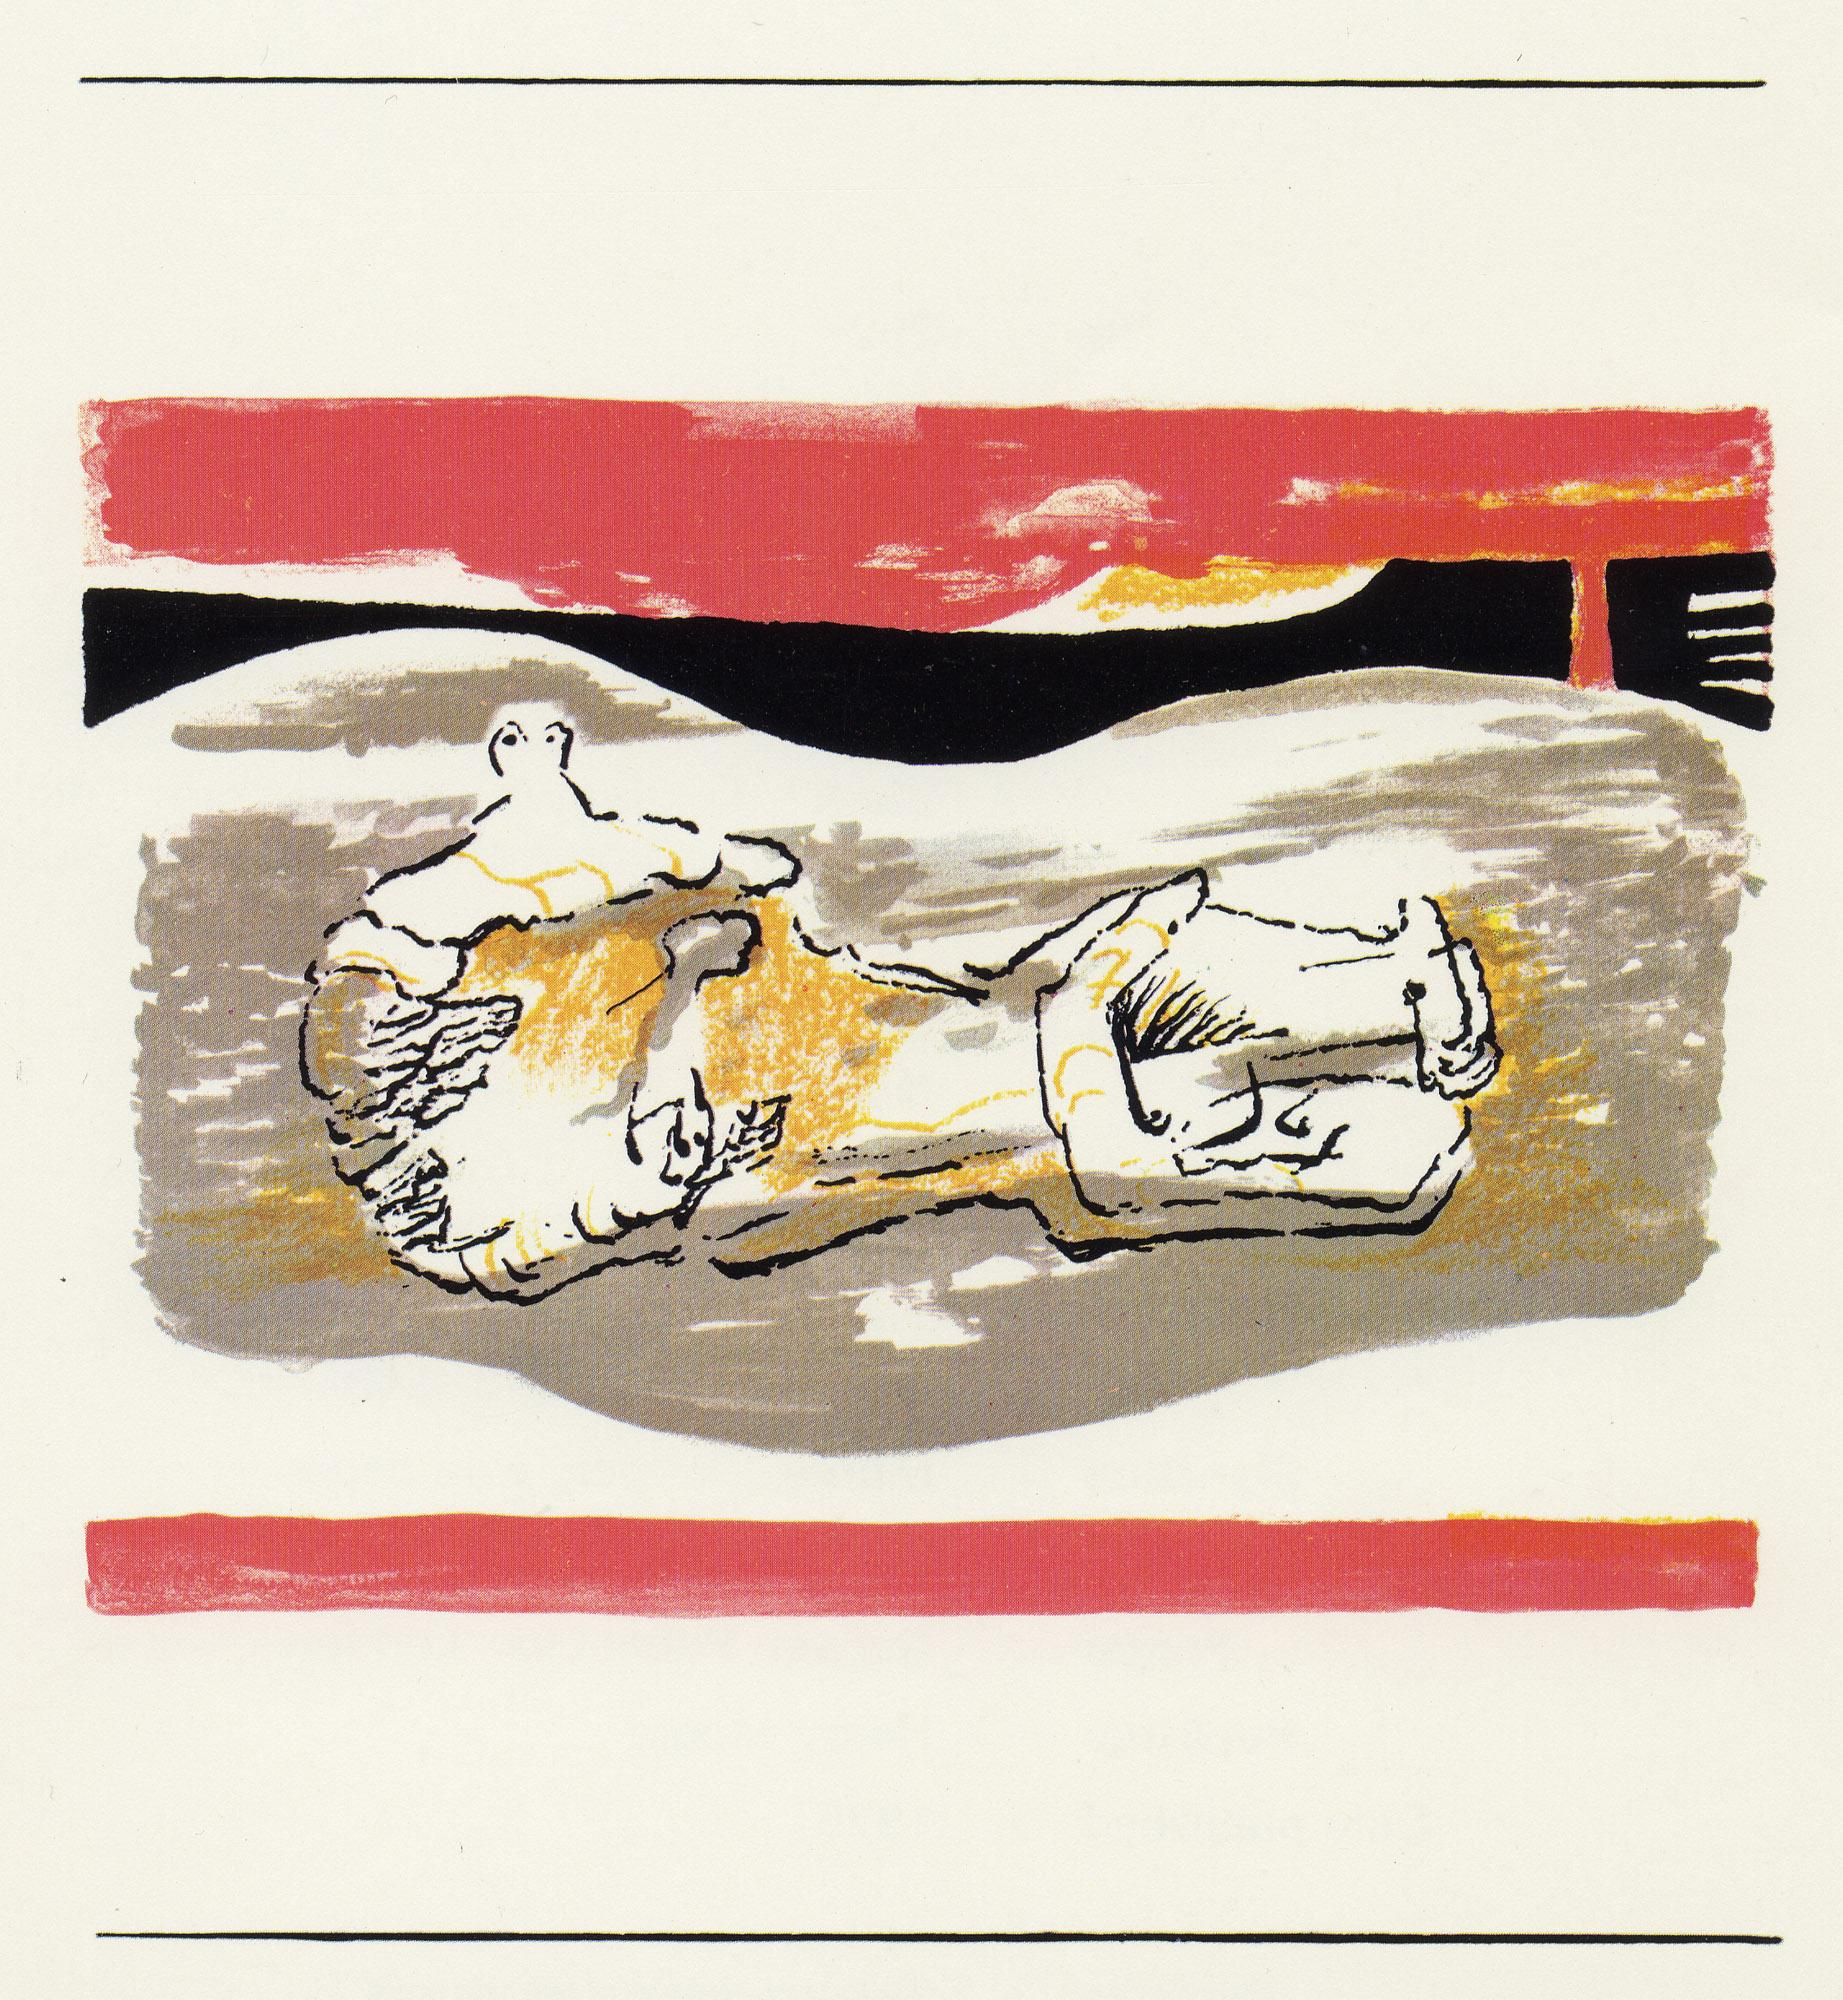 Reclining Figure with Red Stripes - 20th Century, Print by Henry Moore